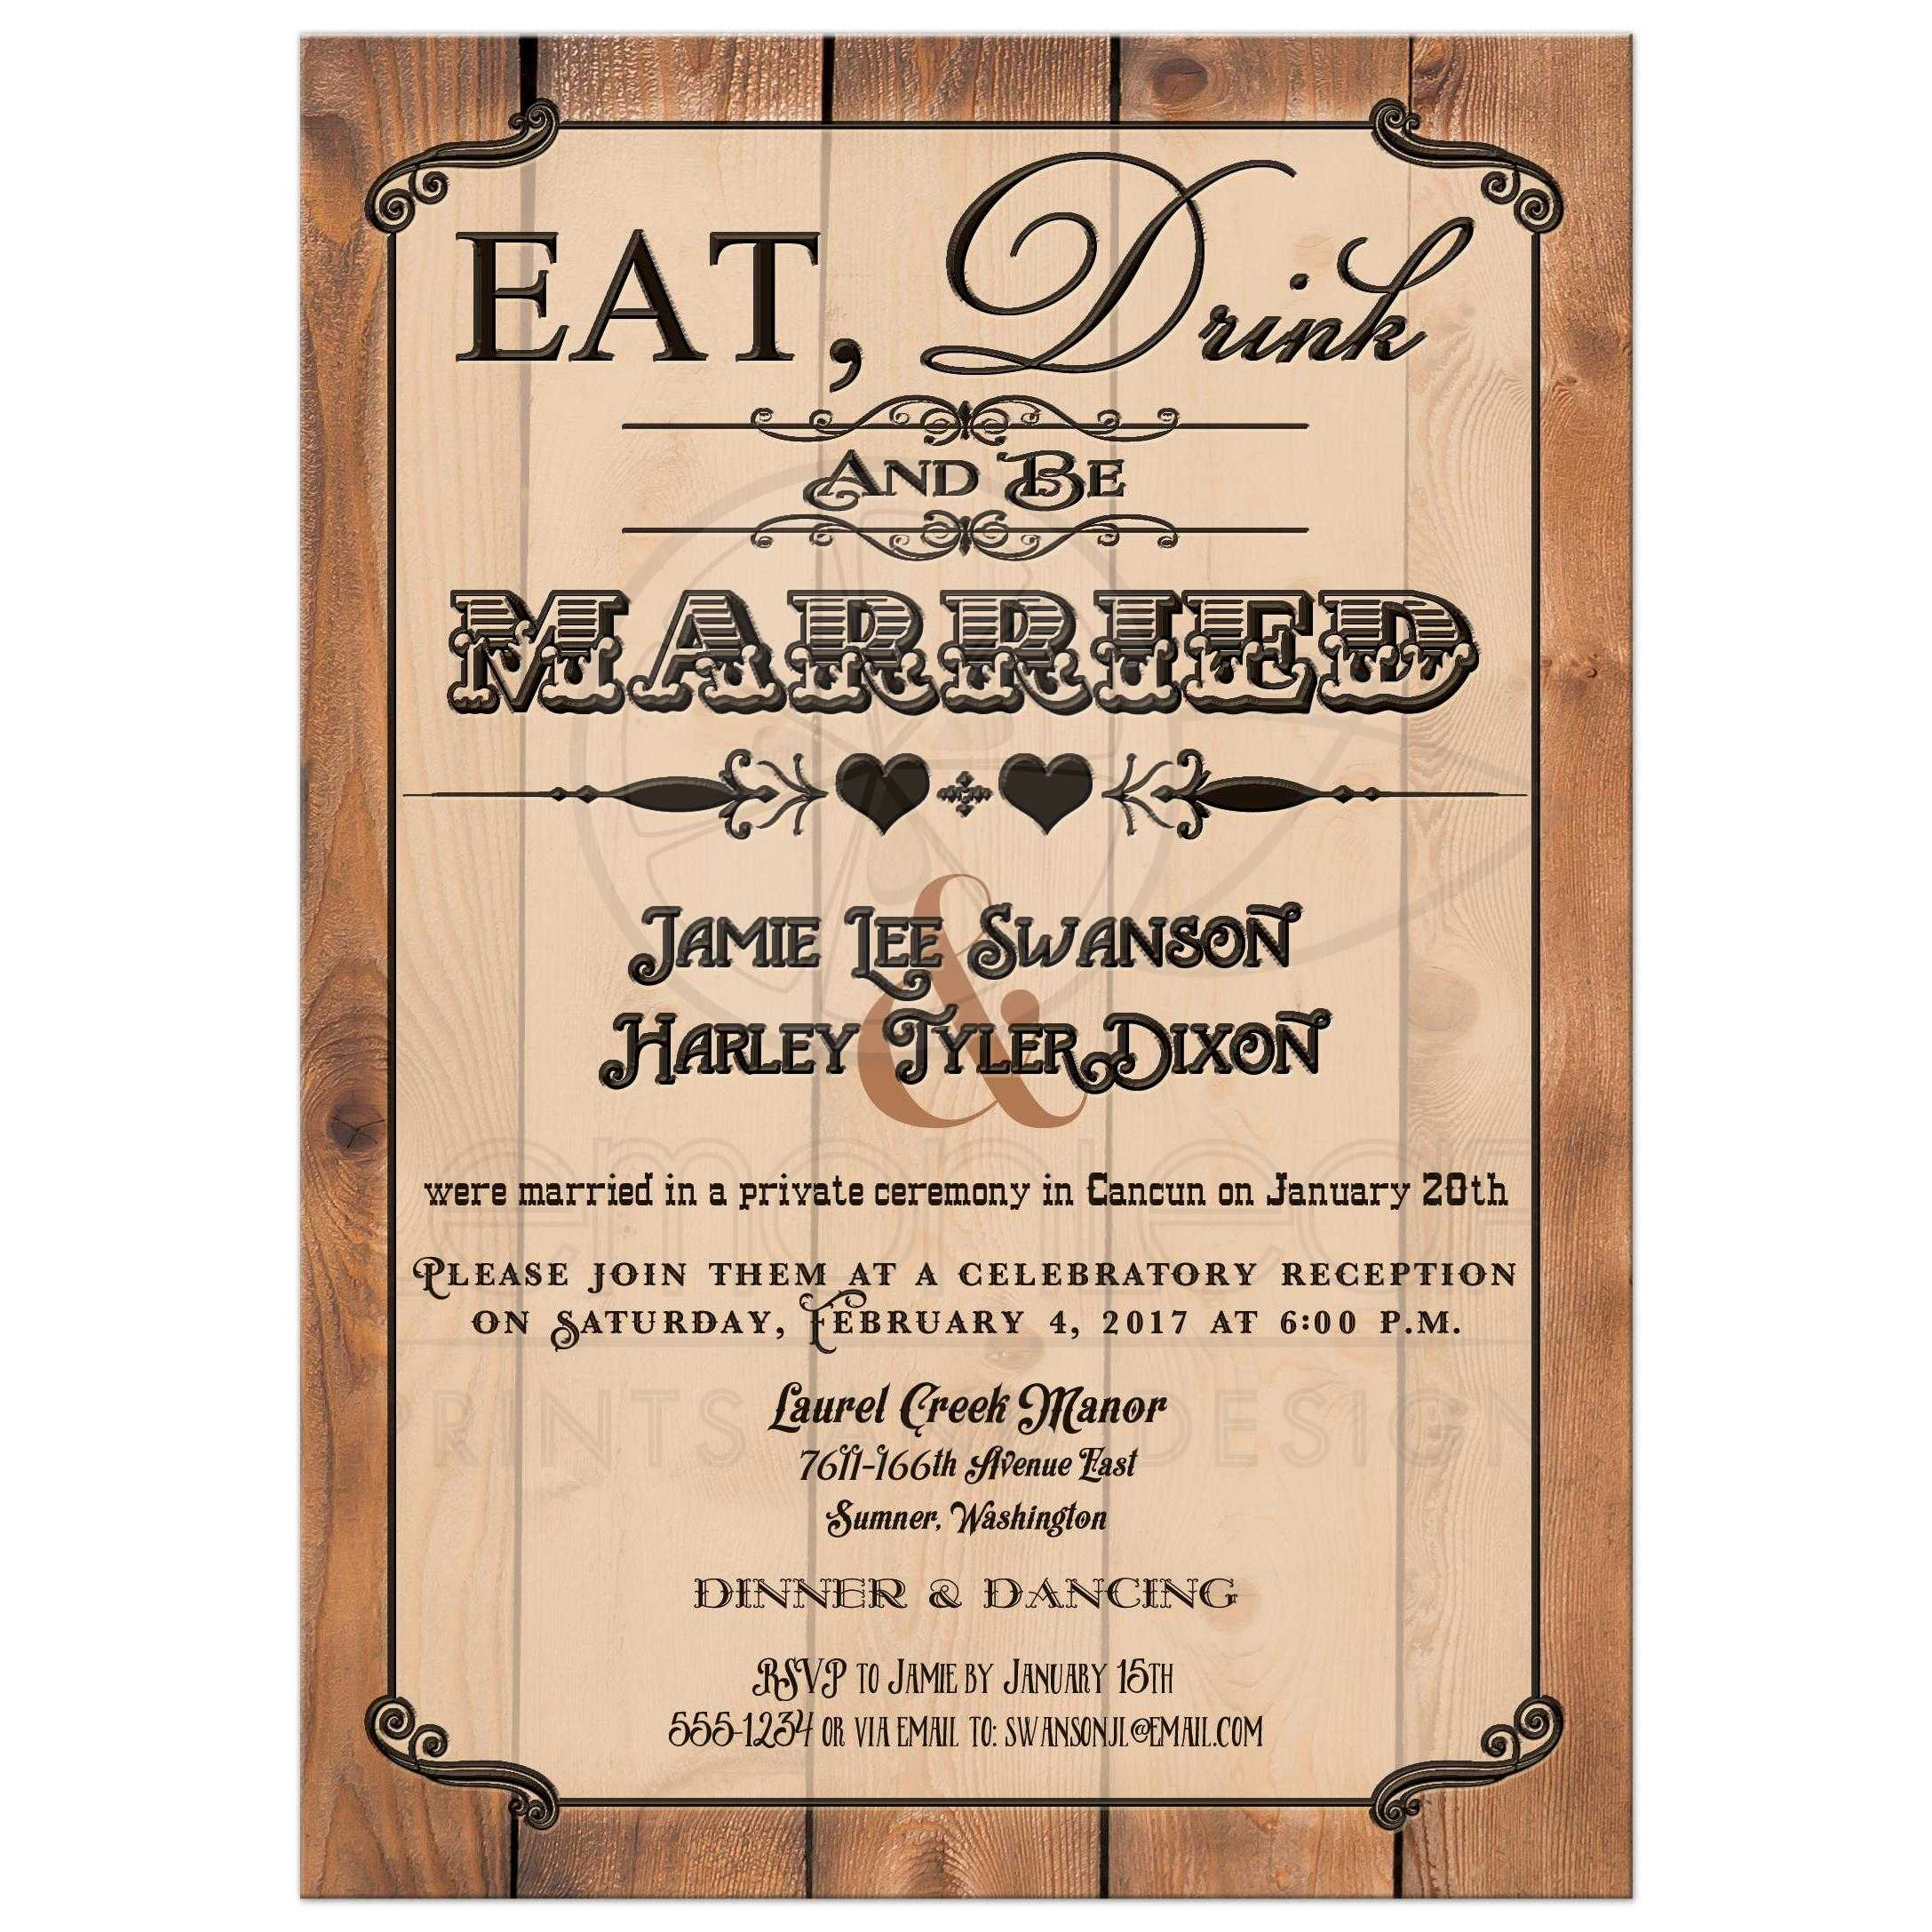 Post Wedding Reception Only Invitation | Eat, Drink and Be Married ...